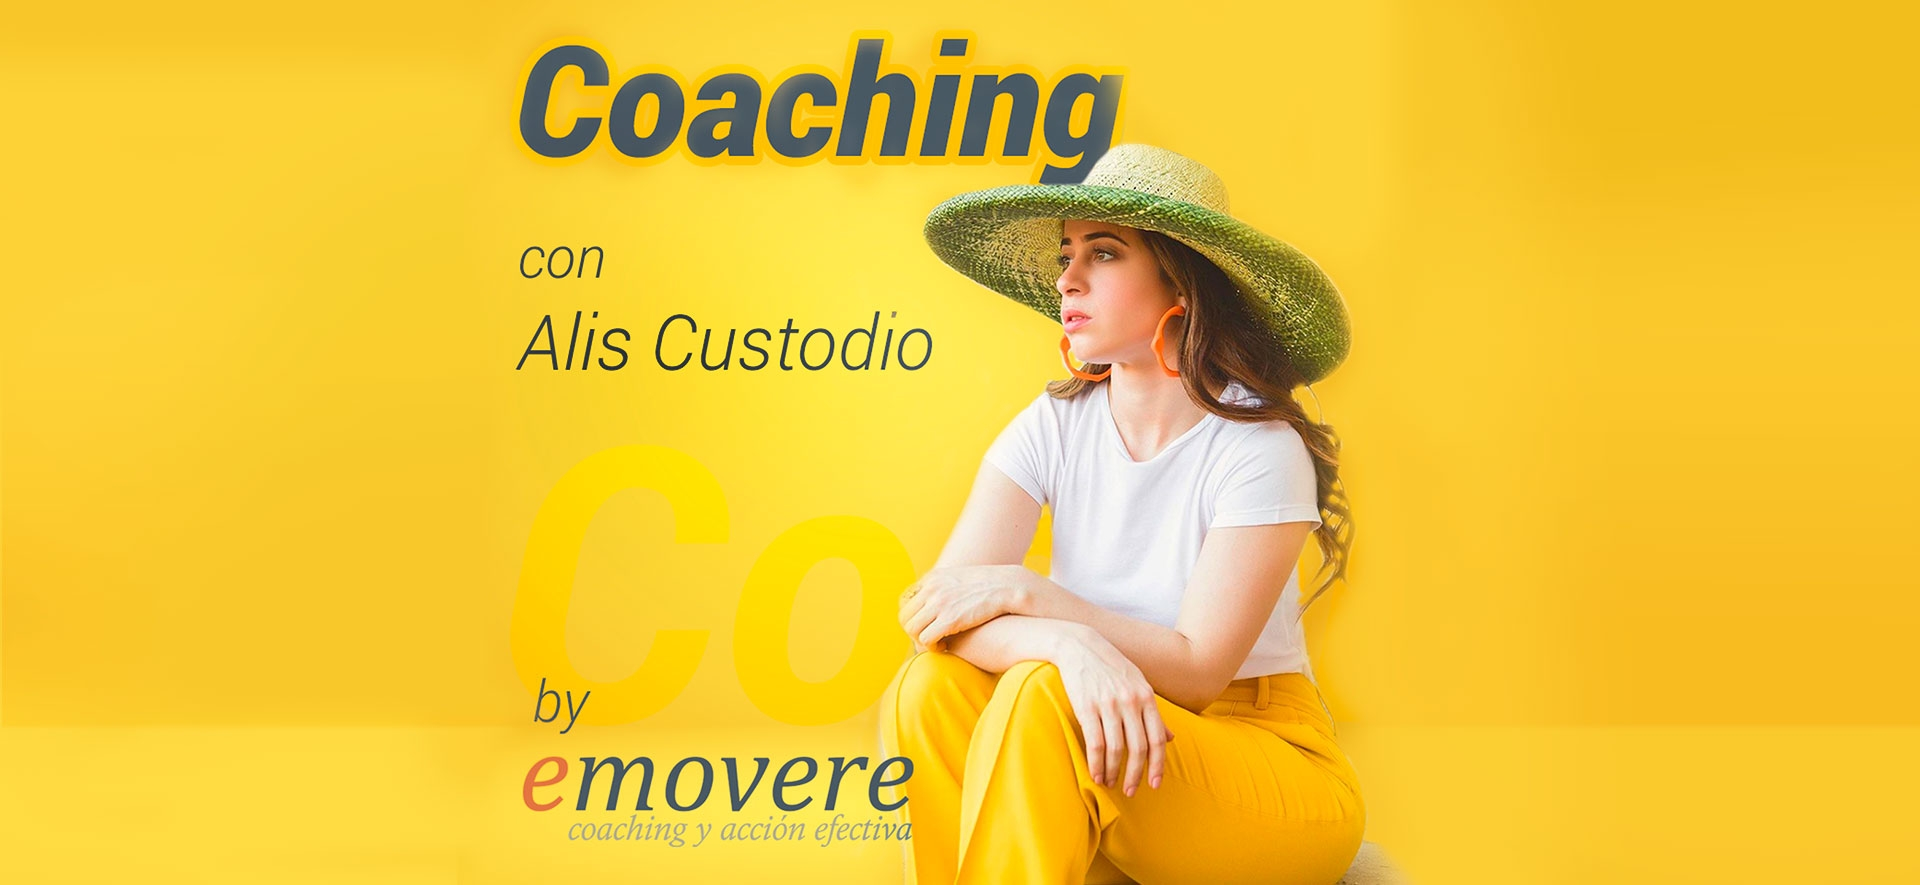 Coaching con Alis Custodio